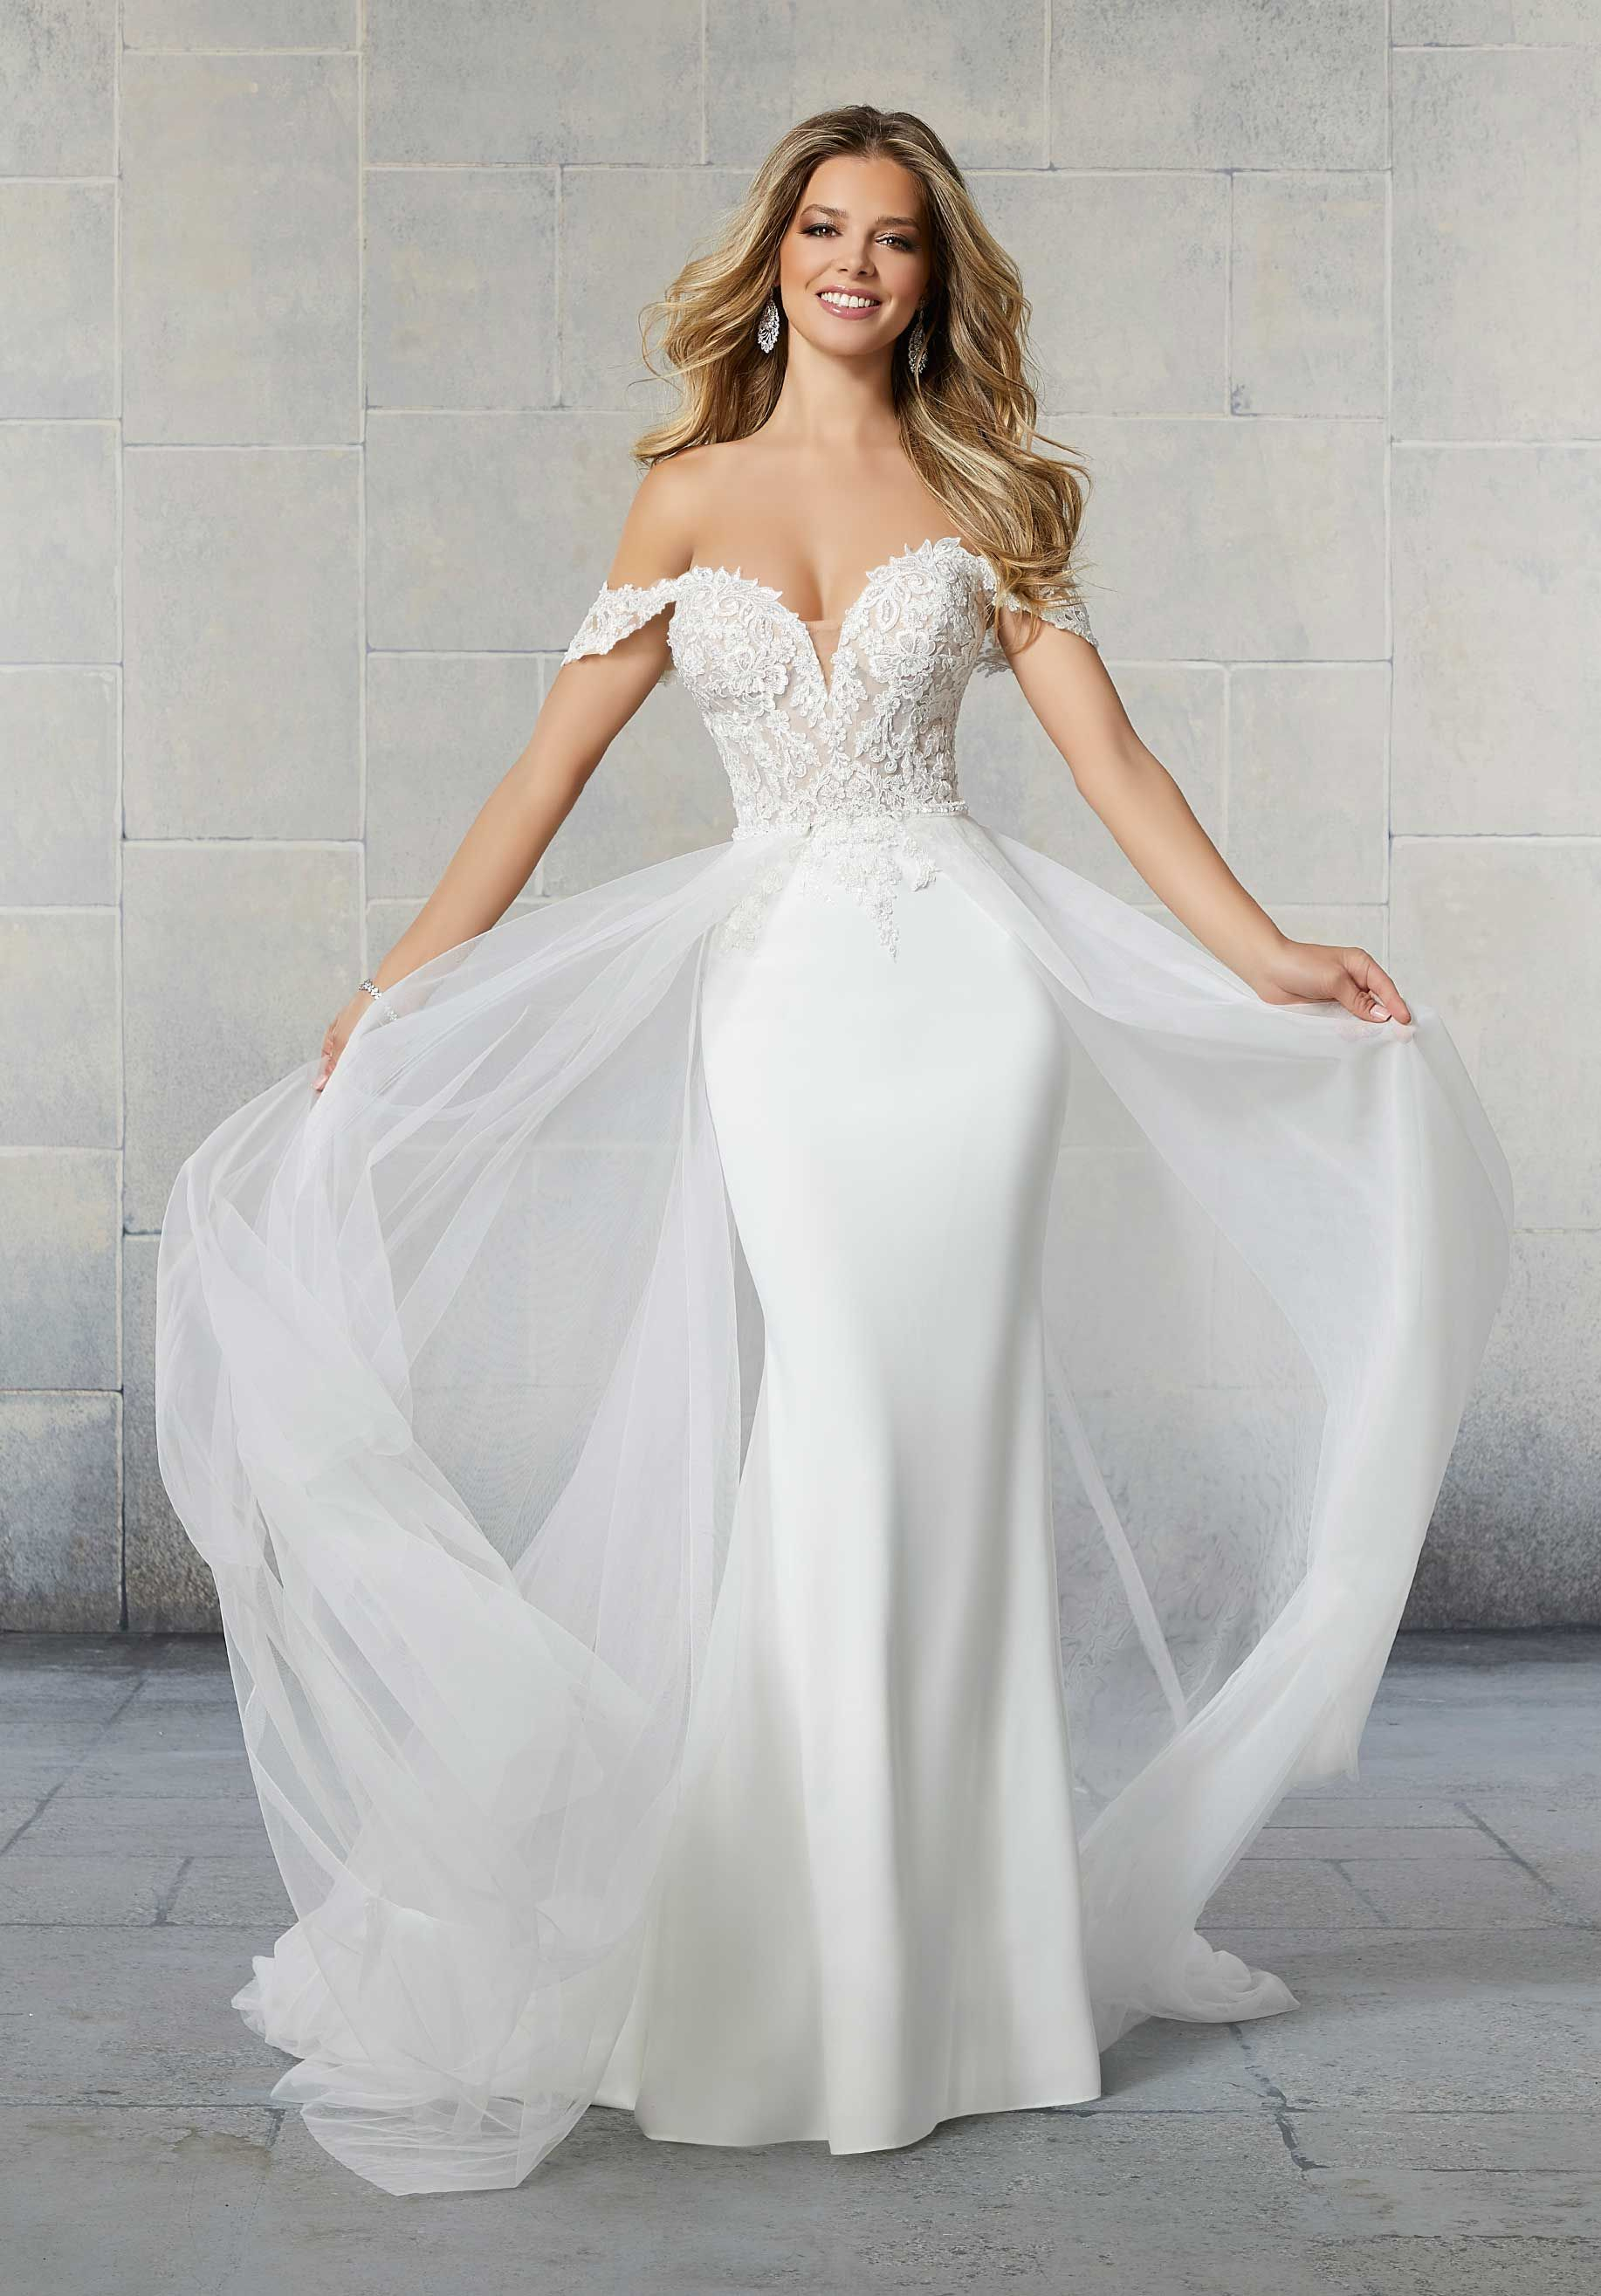 This Gown Features A Beaded Lace Bodice With Detachable Off The